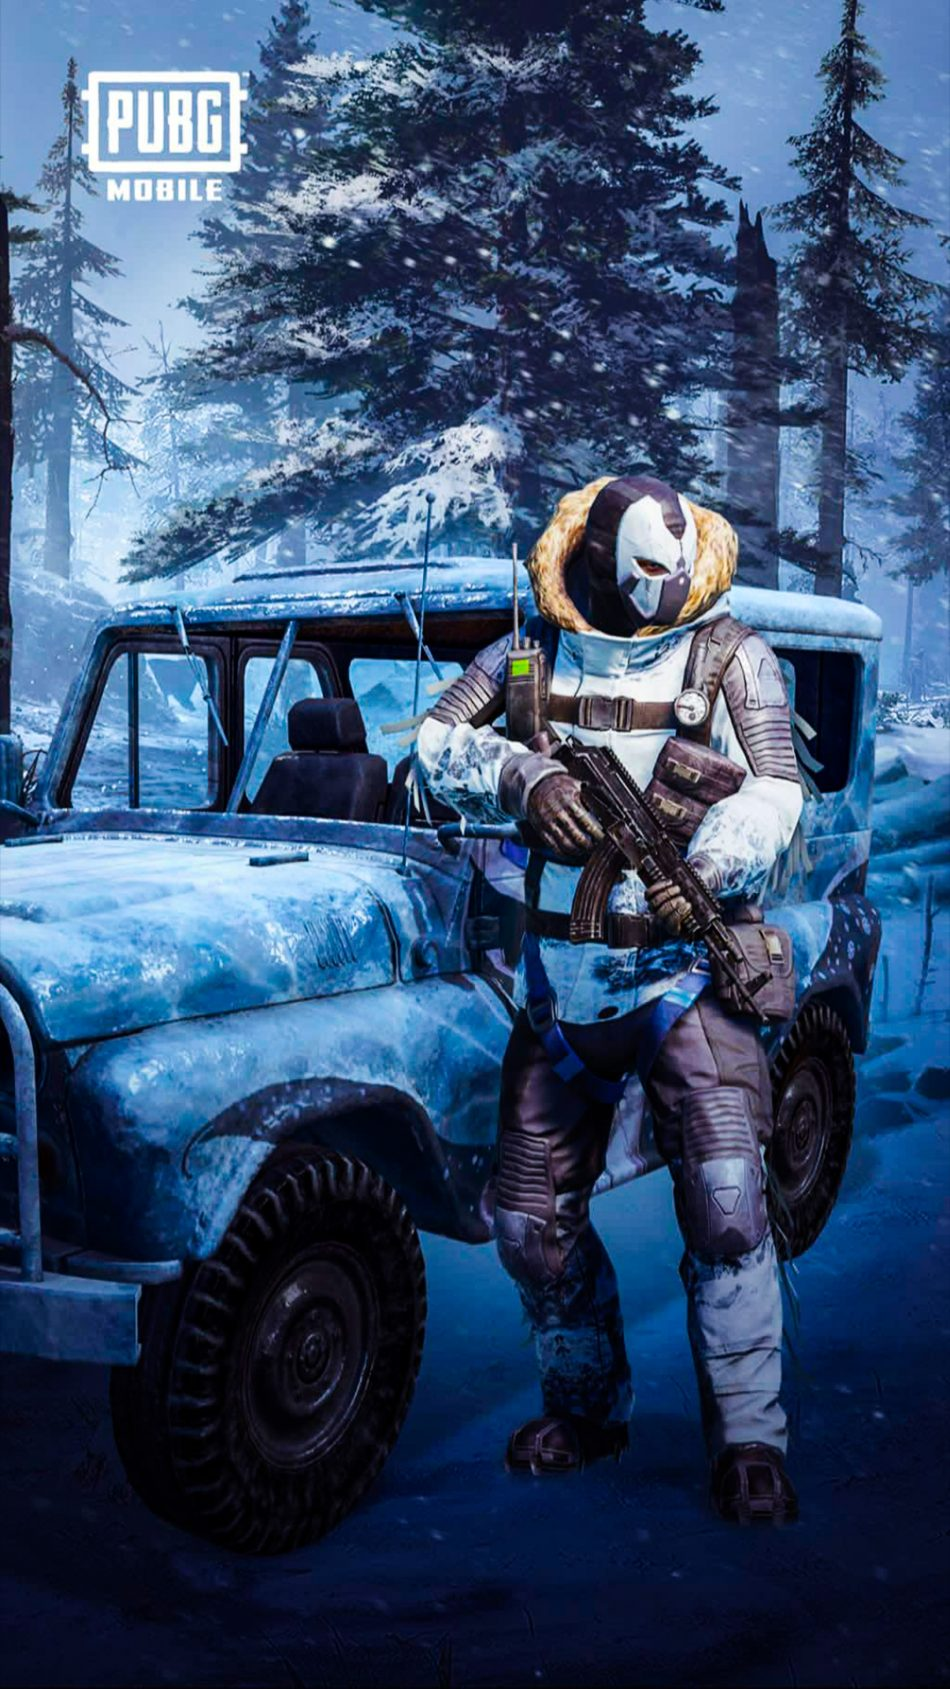 Download Download Pubg Mobile Snowman Pure 4k Ultra - Pubg Mobile Wallpaper 4k , HD Wallpaper & Backgrounds